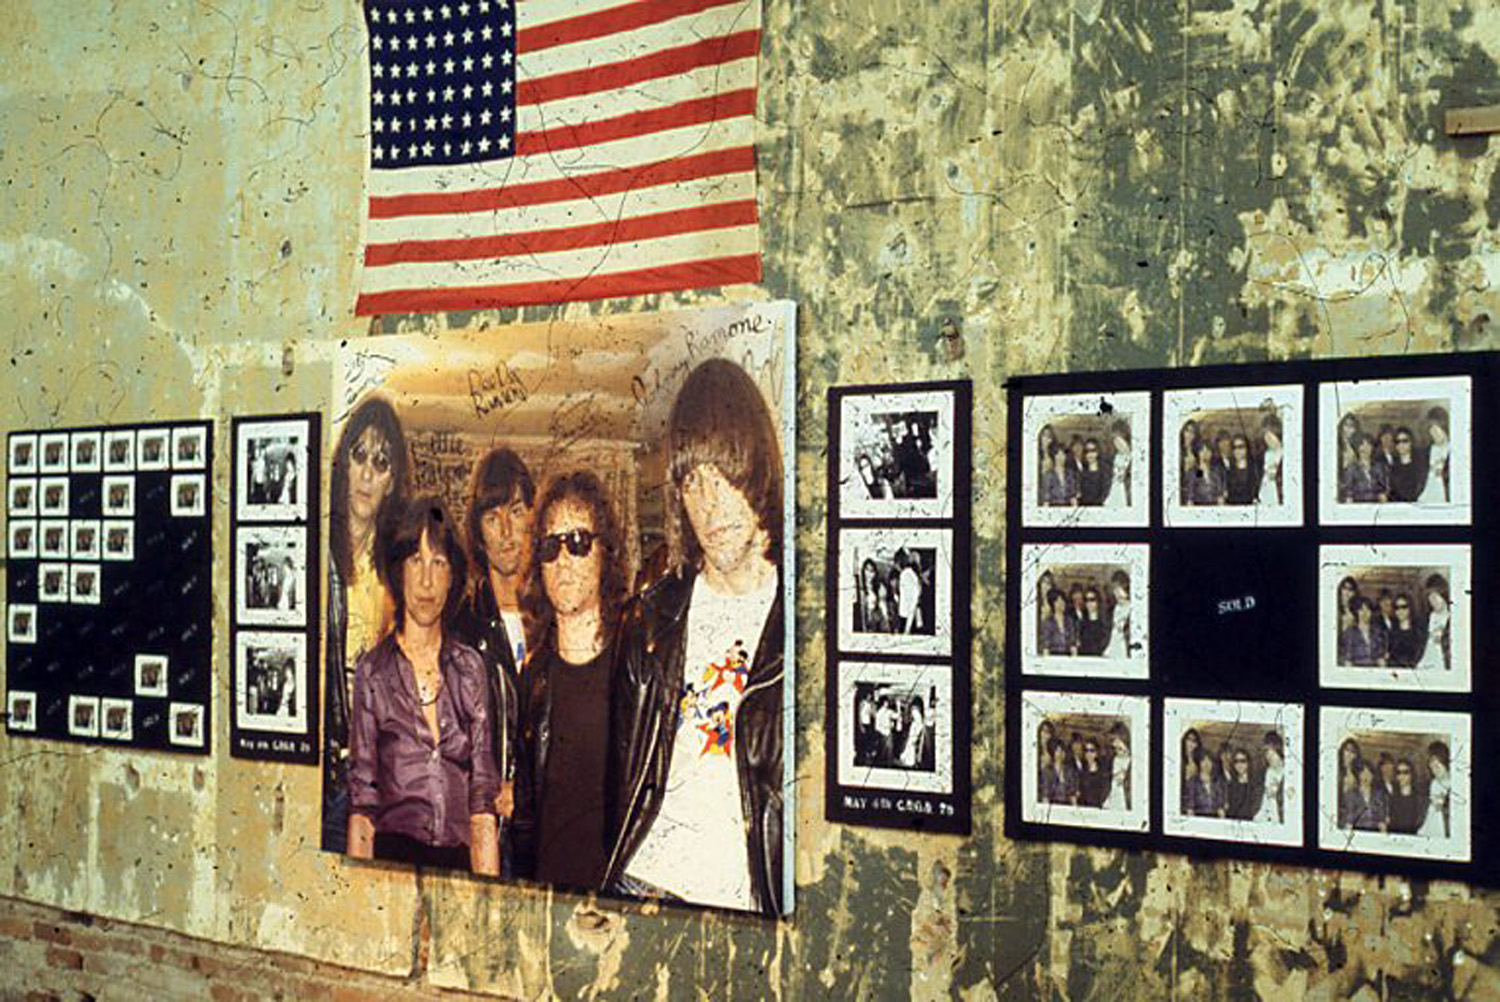 """Miller, Ringma & Hoppe, """"Bettie with the Ramones"""" on display at the Punk Art Exhibition, Washington DC, 1978"""